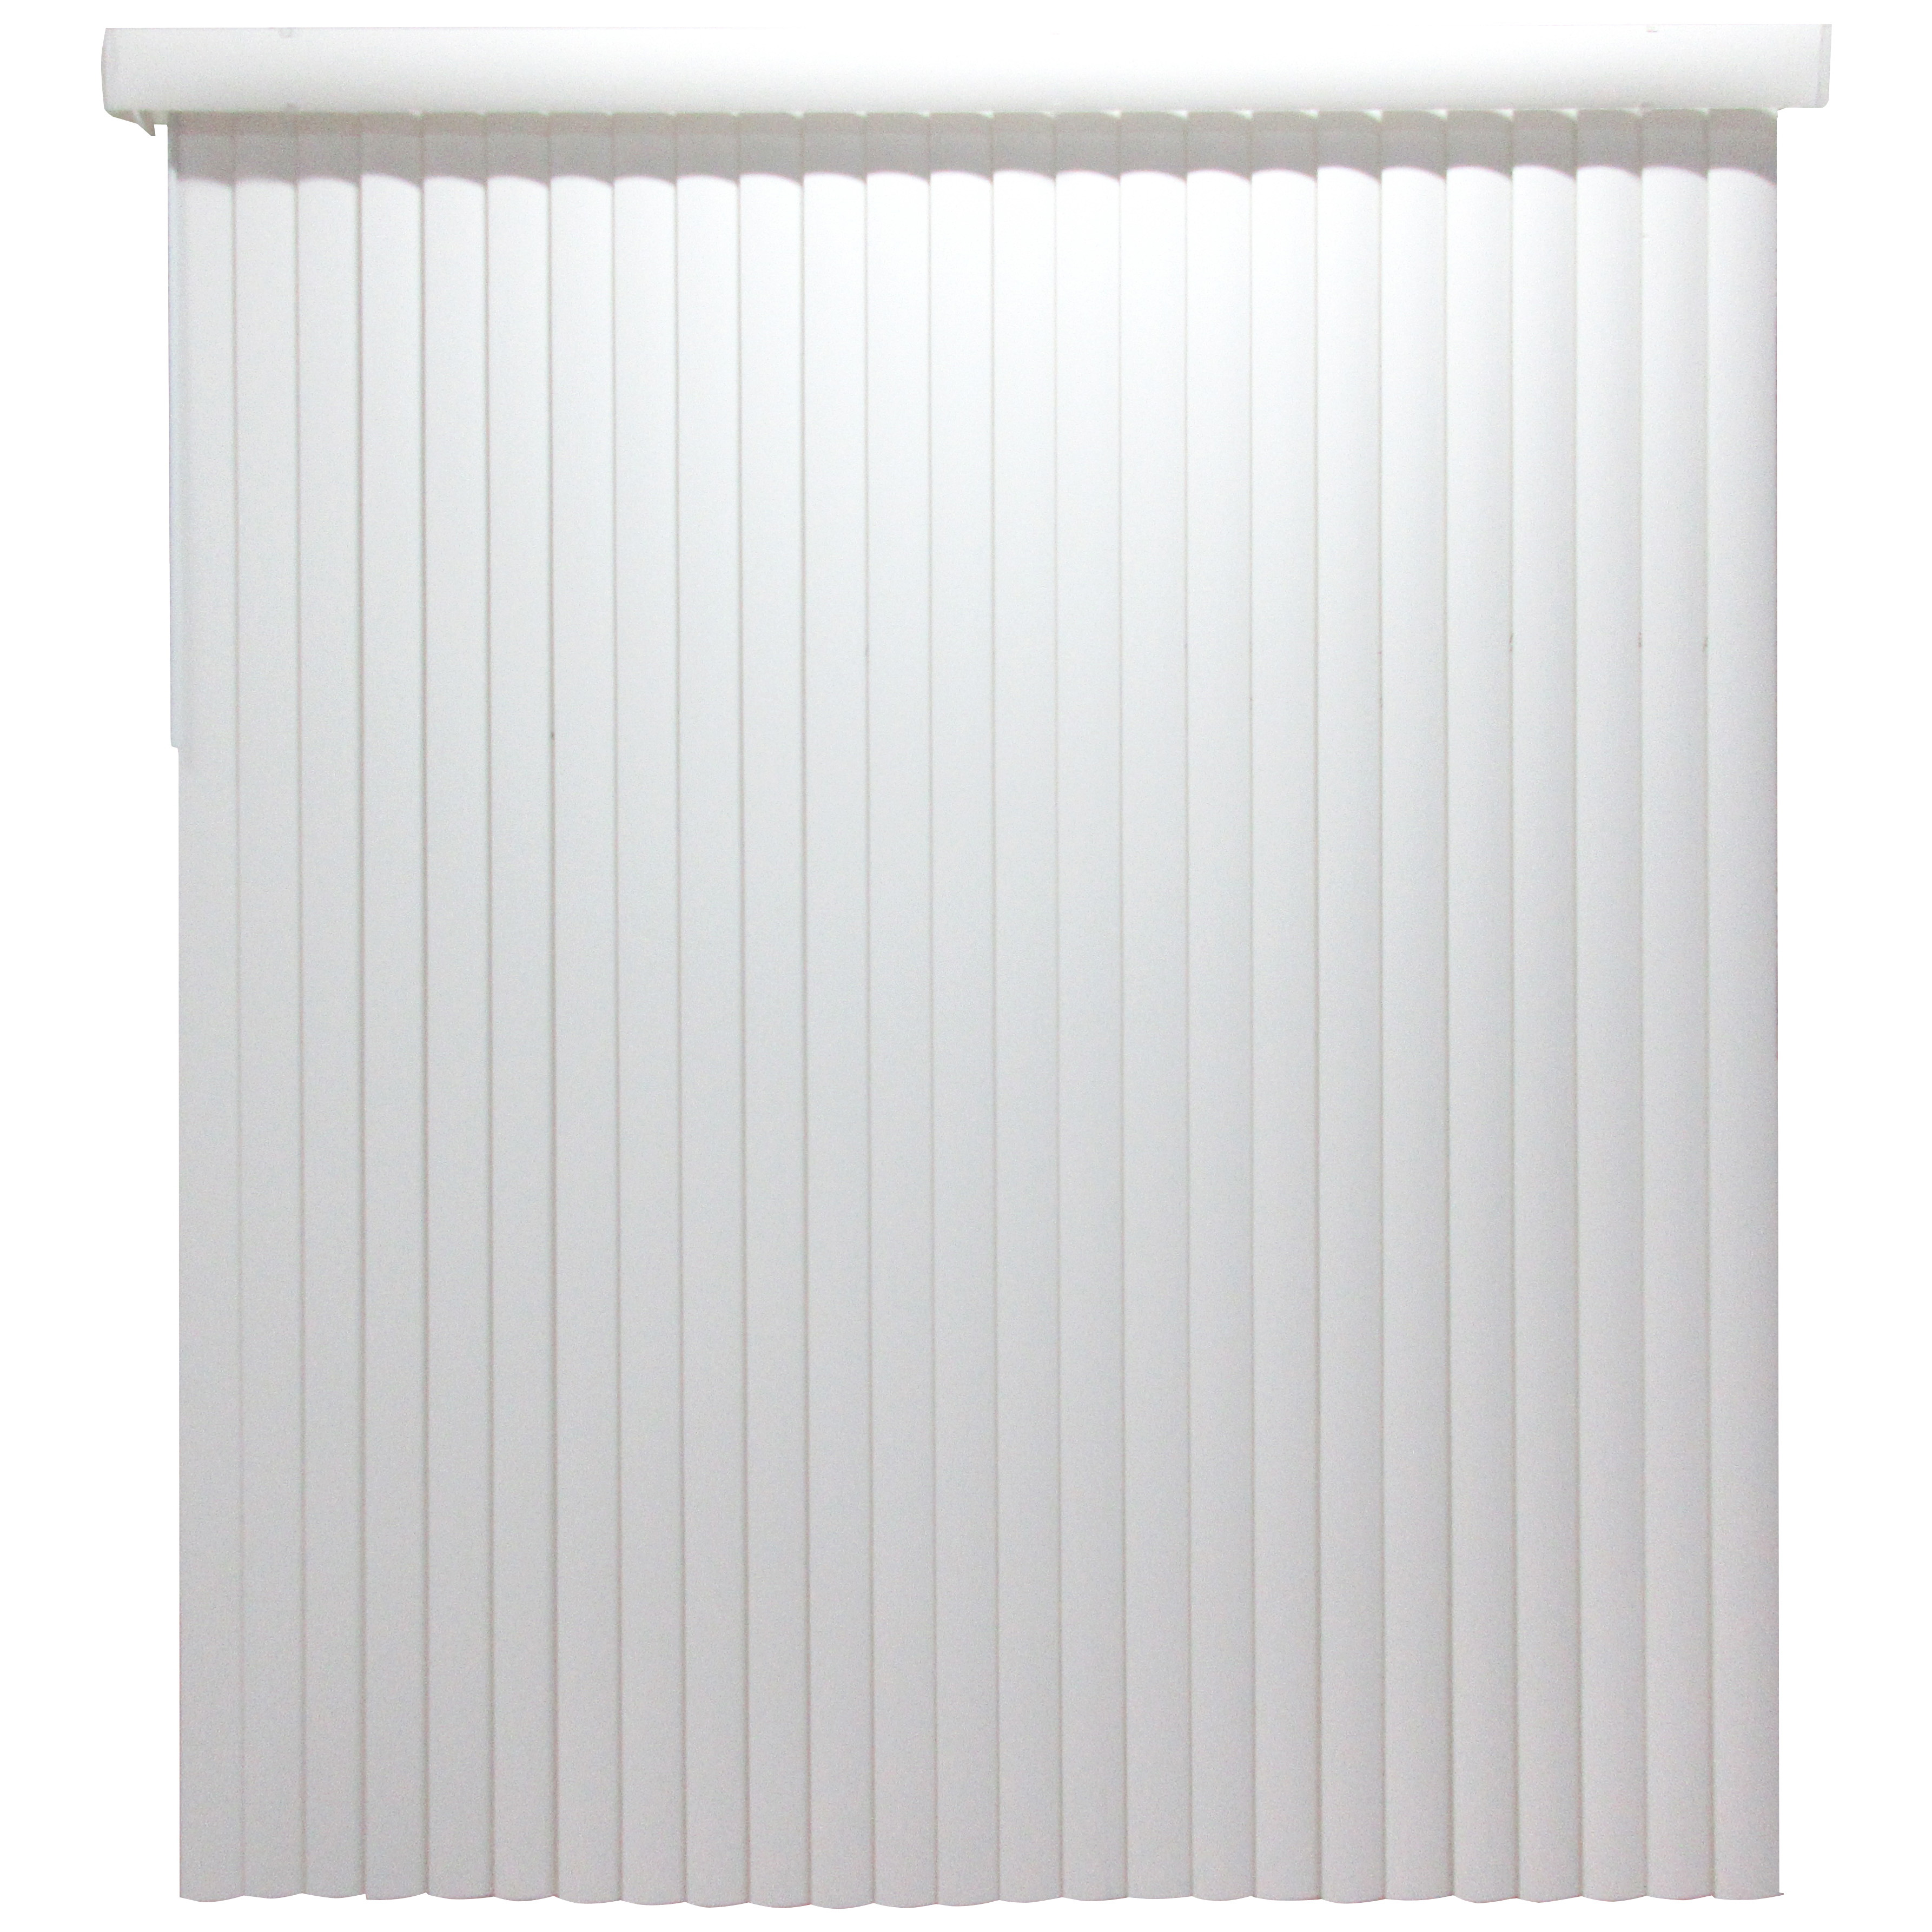 Picture of Simple Spaces MBV-78X84-V3L Window Blinds, 84 in L, 78 in W, Vinyl, White